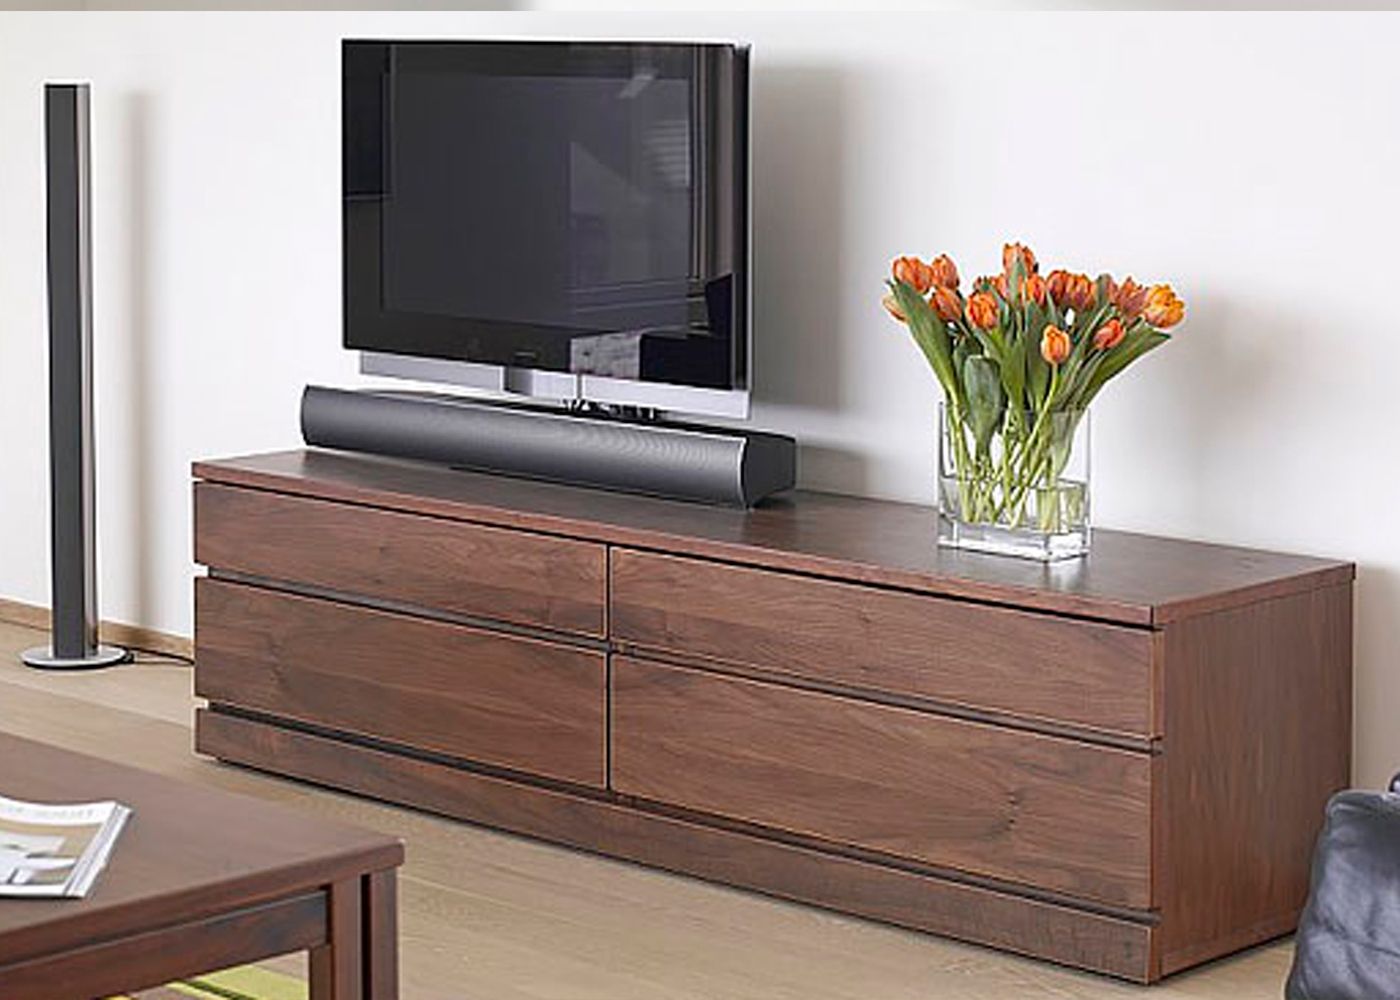 Walnut Tv Cabinets With Well Known Skovby Sm87 Tv Cabinet In Walnut Finish 1 – Midfurn Furniture Superstore (View 19 of 20)